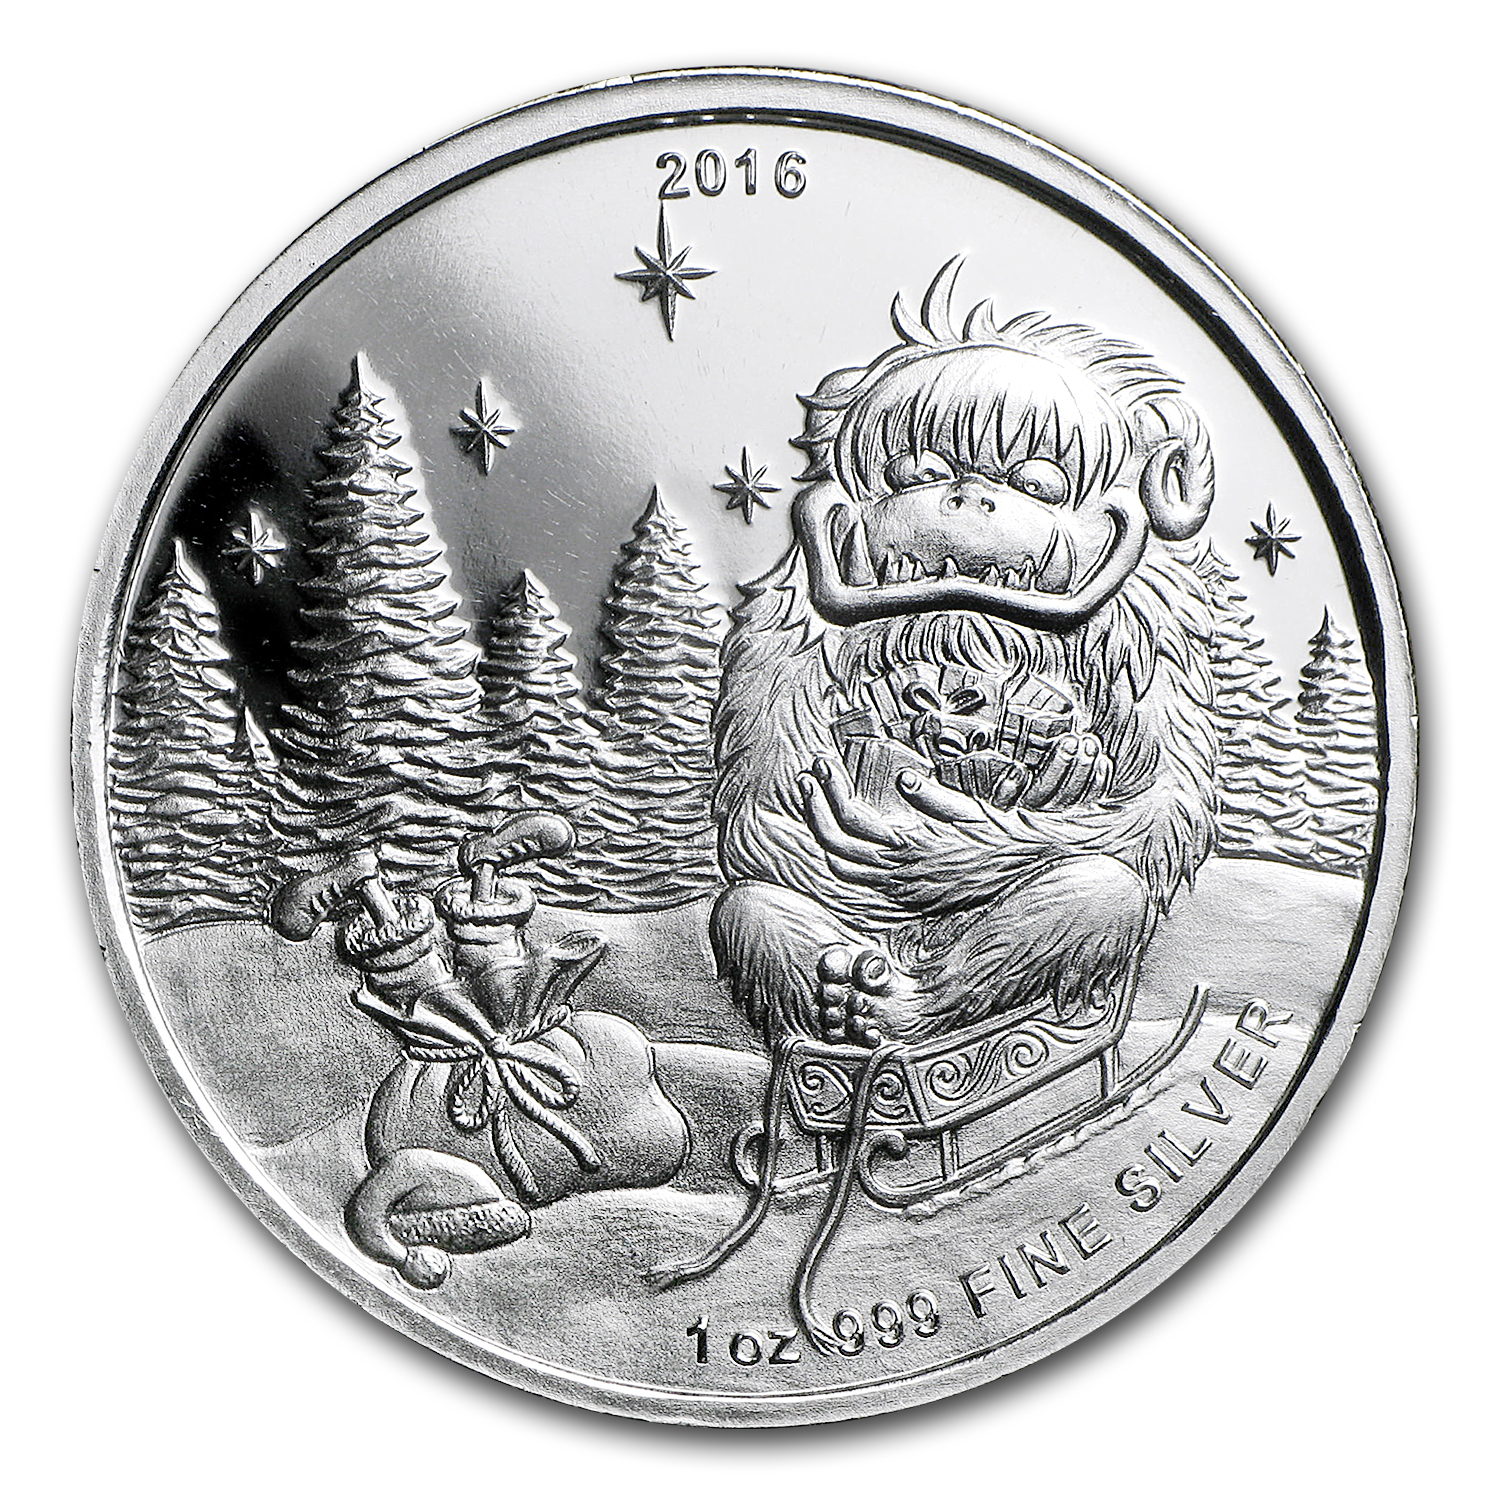 1 oz Silver Round - 2016 Merry Christmas Abominable Snowman